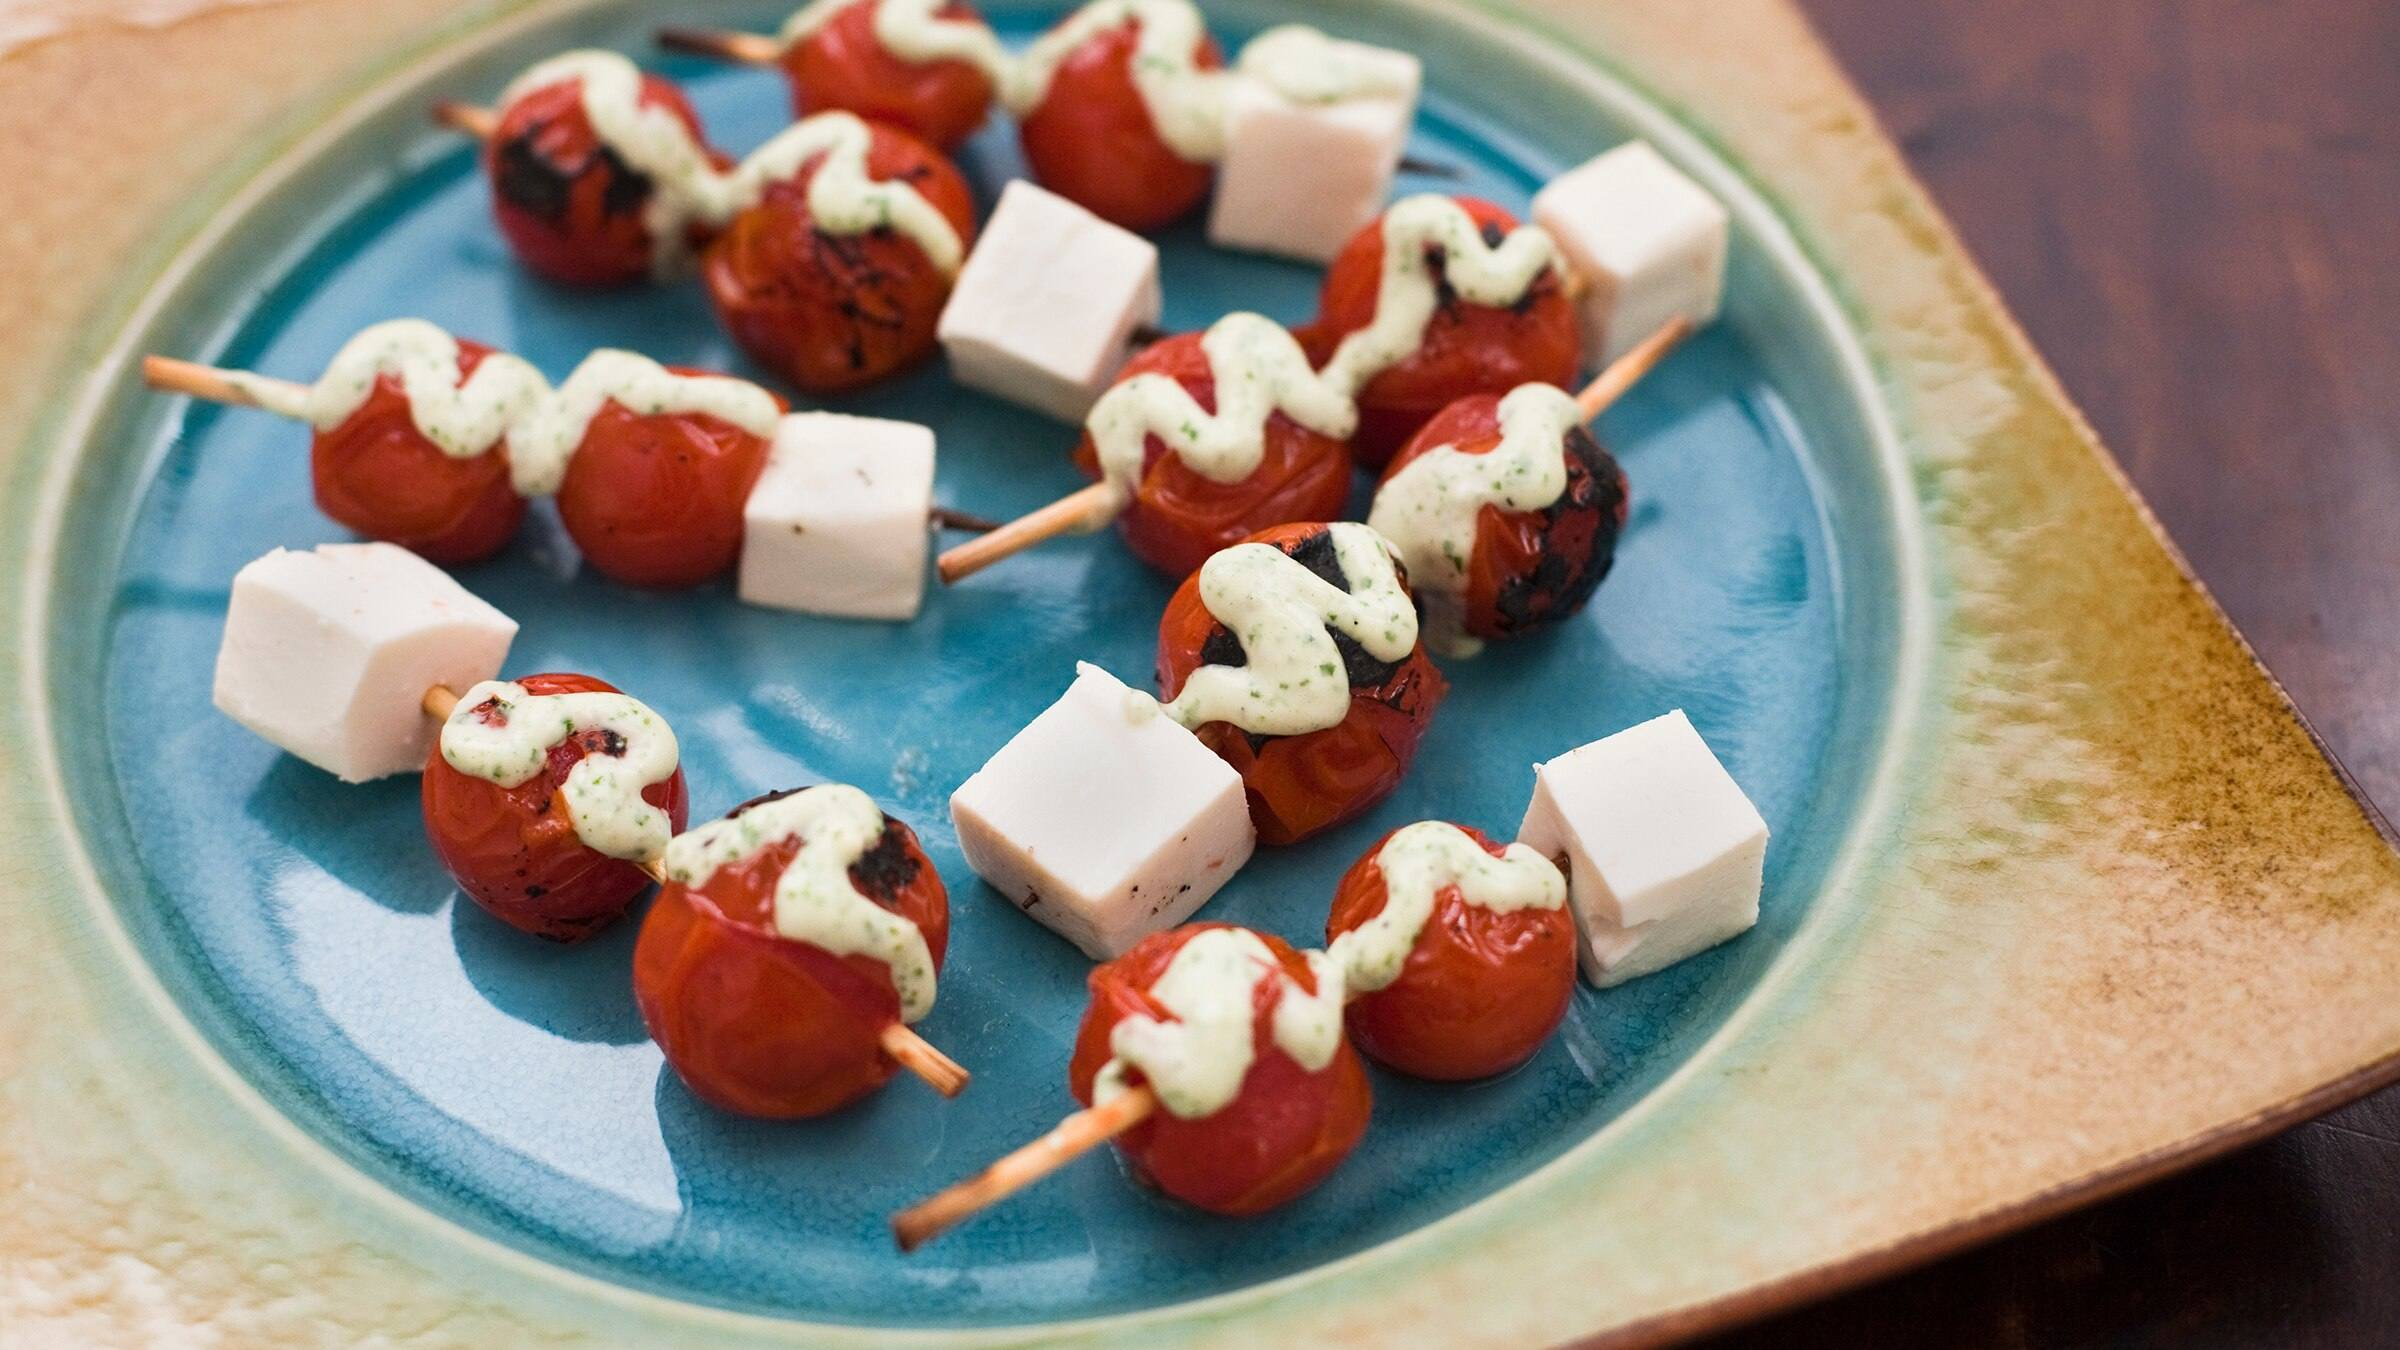 Broiled Cherry Tomato Skewers with Basil Dressing